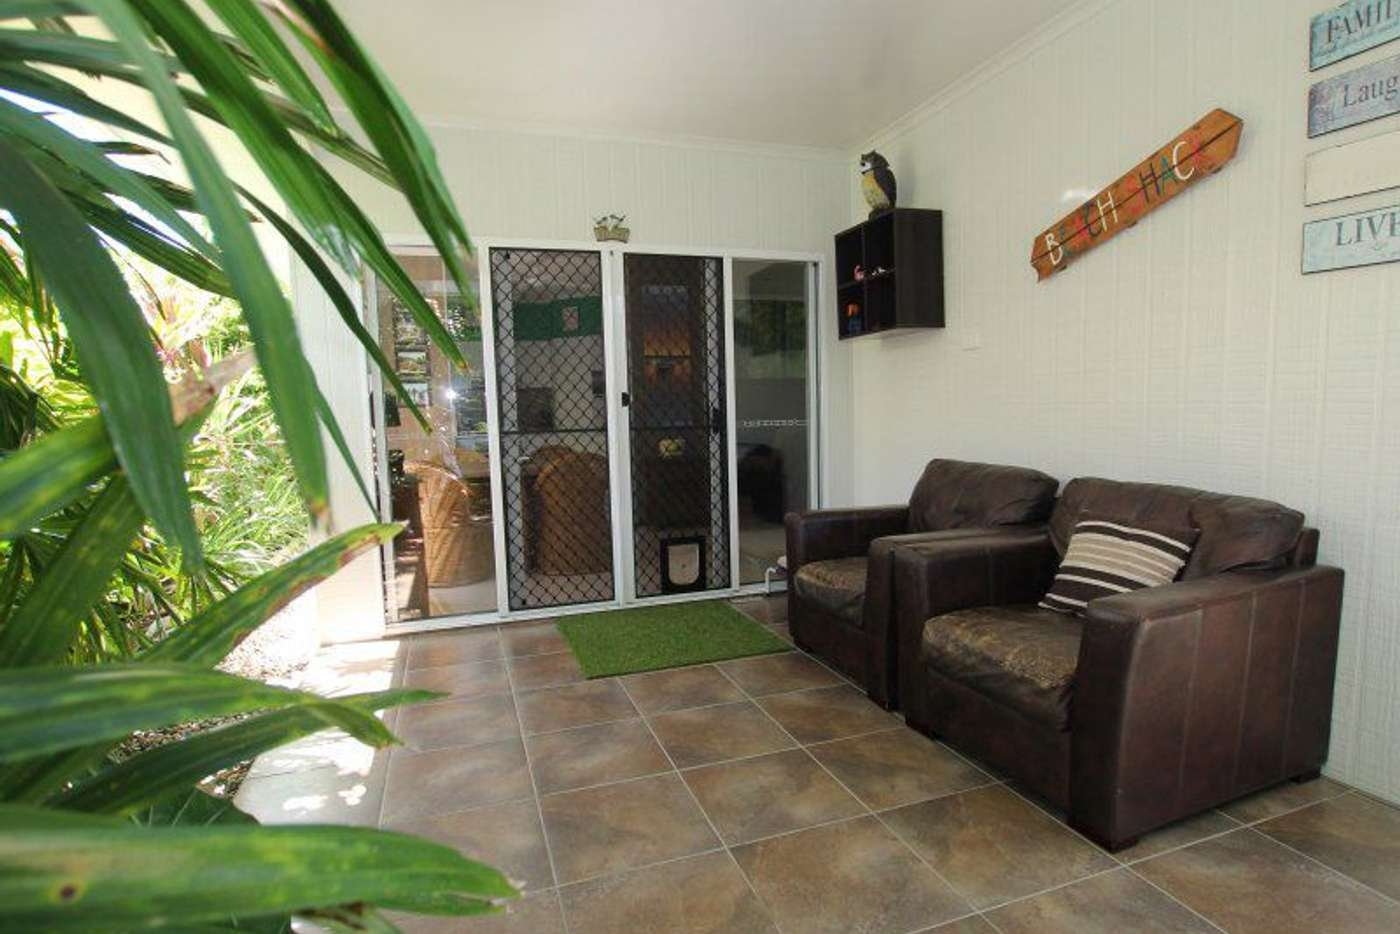 Main view of Homely house listing, 1/1 Seaview Court, Wongaling Beach QLD 4852